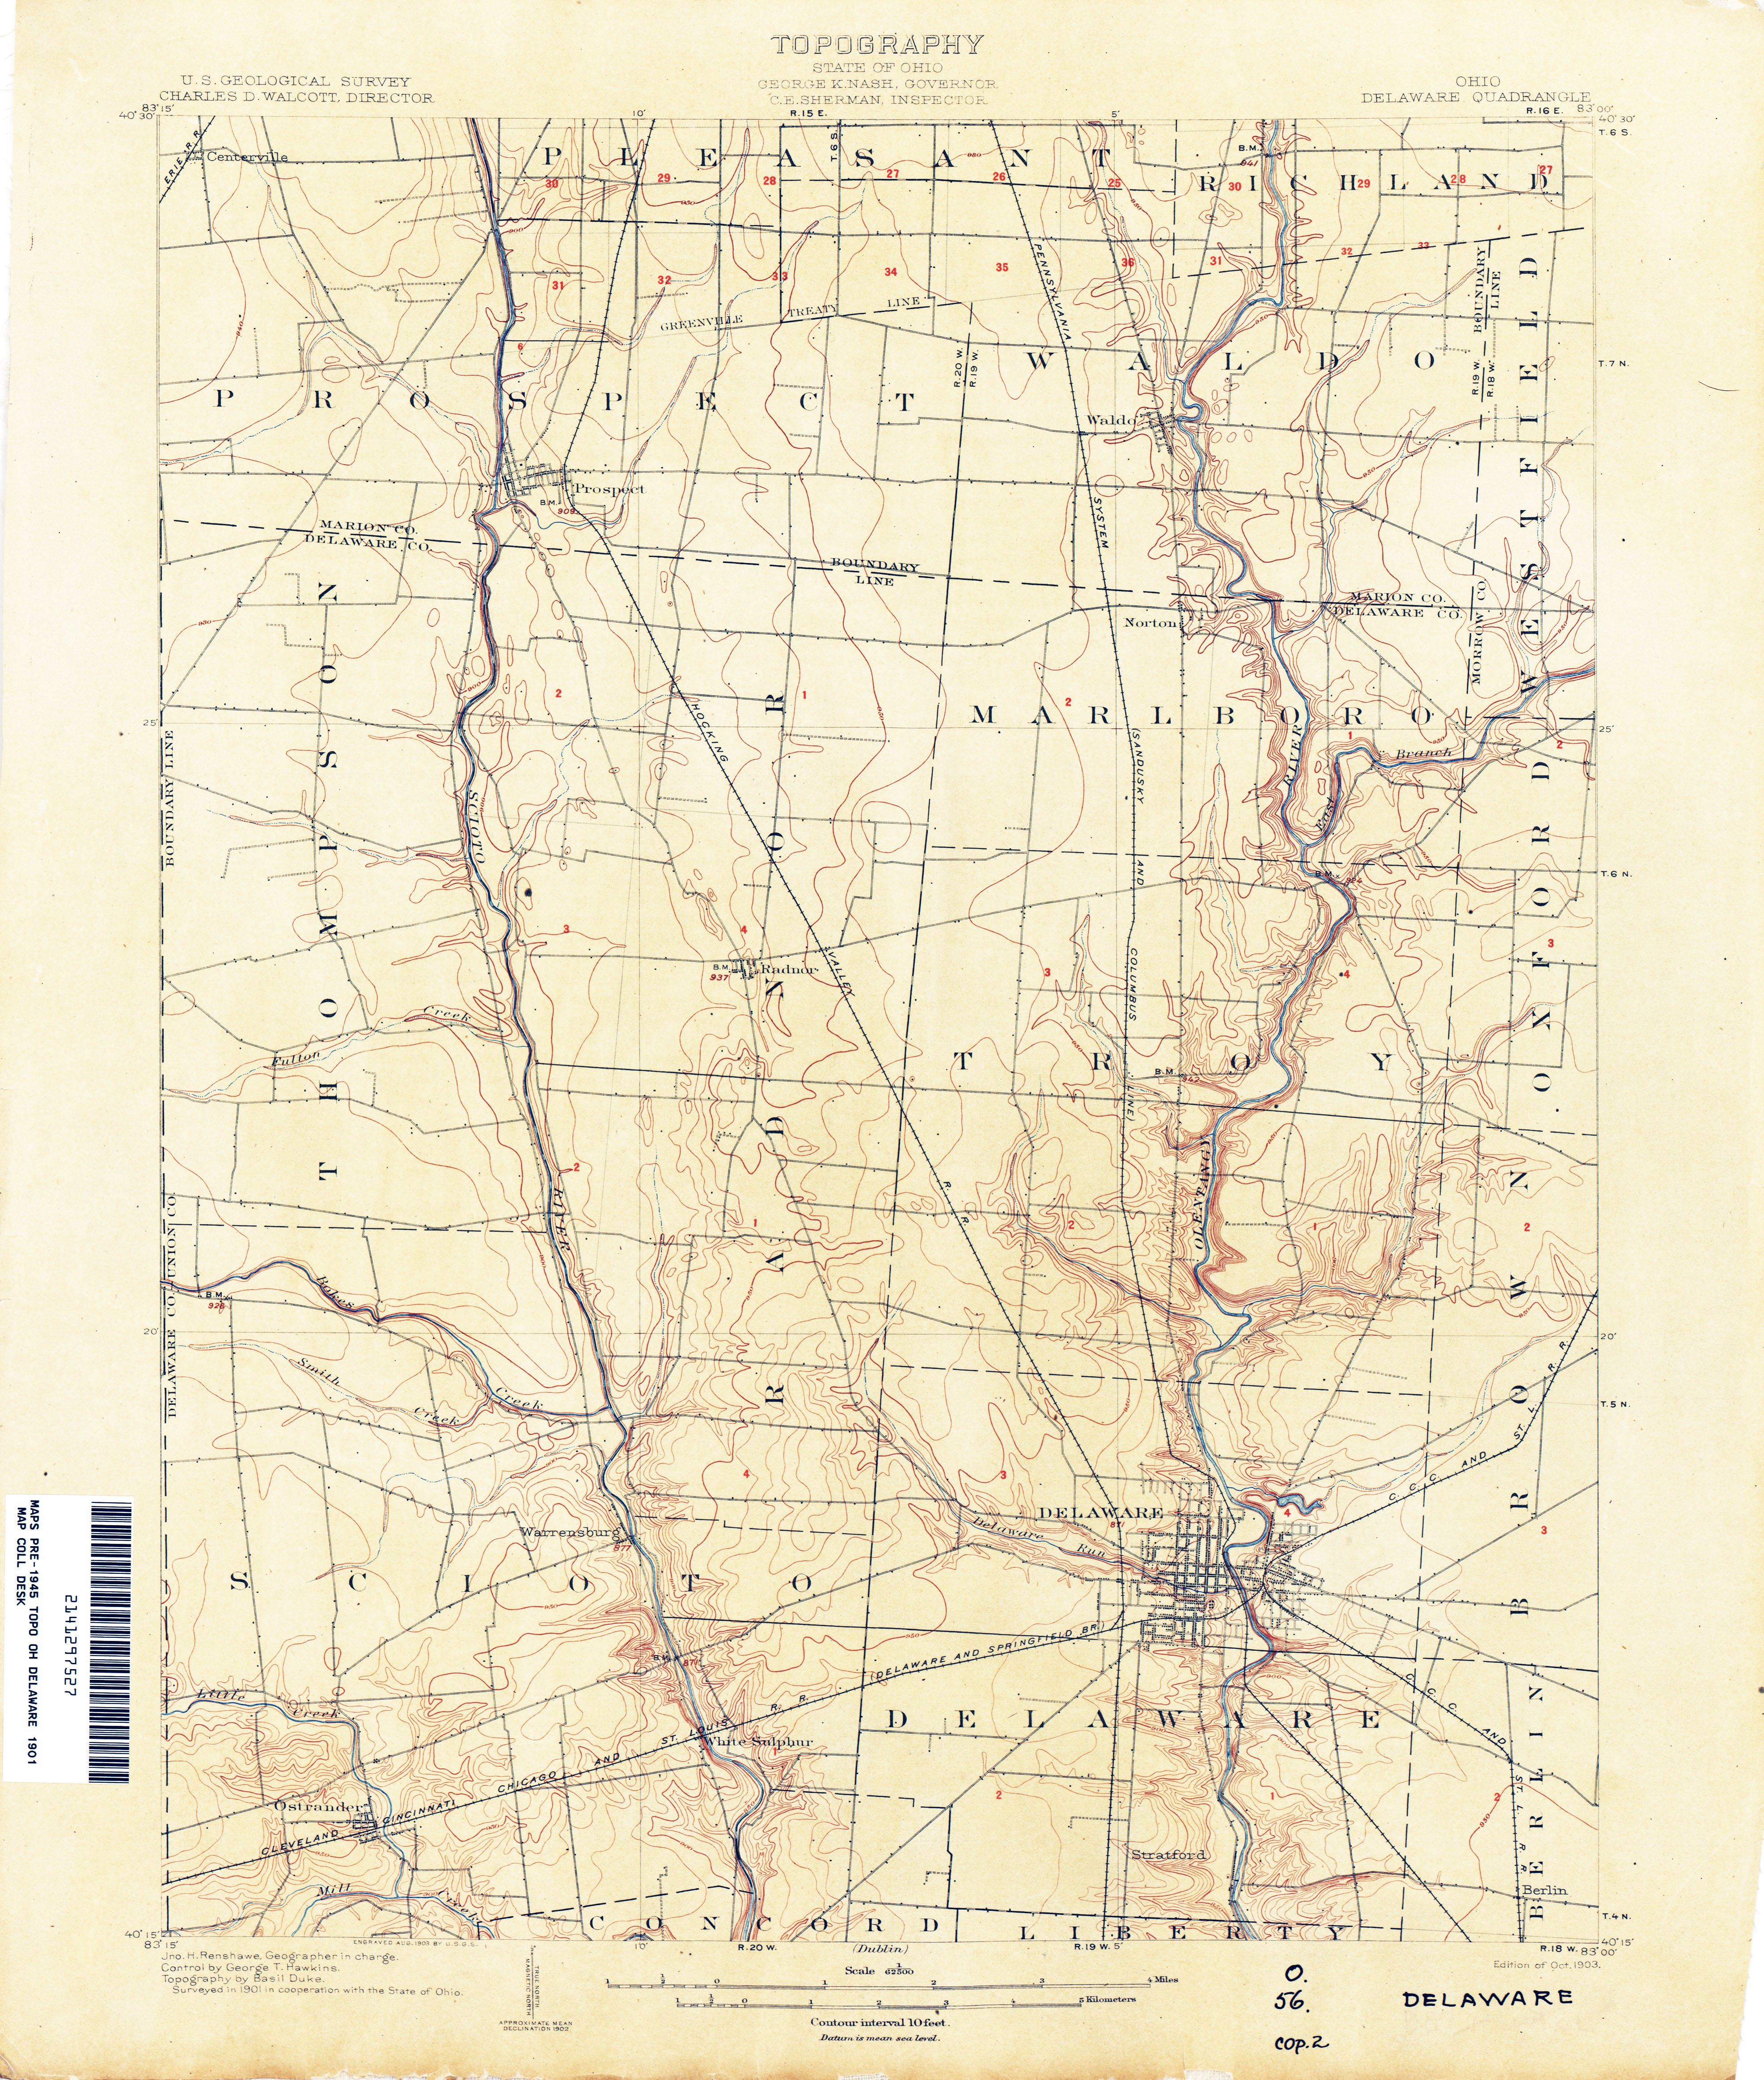 Genoa Ohio Map.Ohio Historical Topographic Maps Perry Castaneda Map Collection